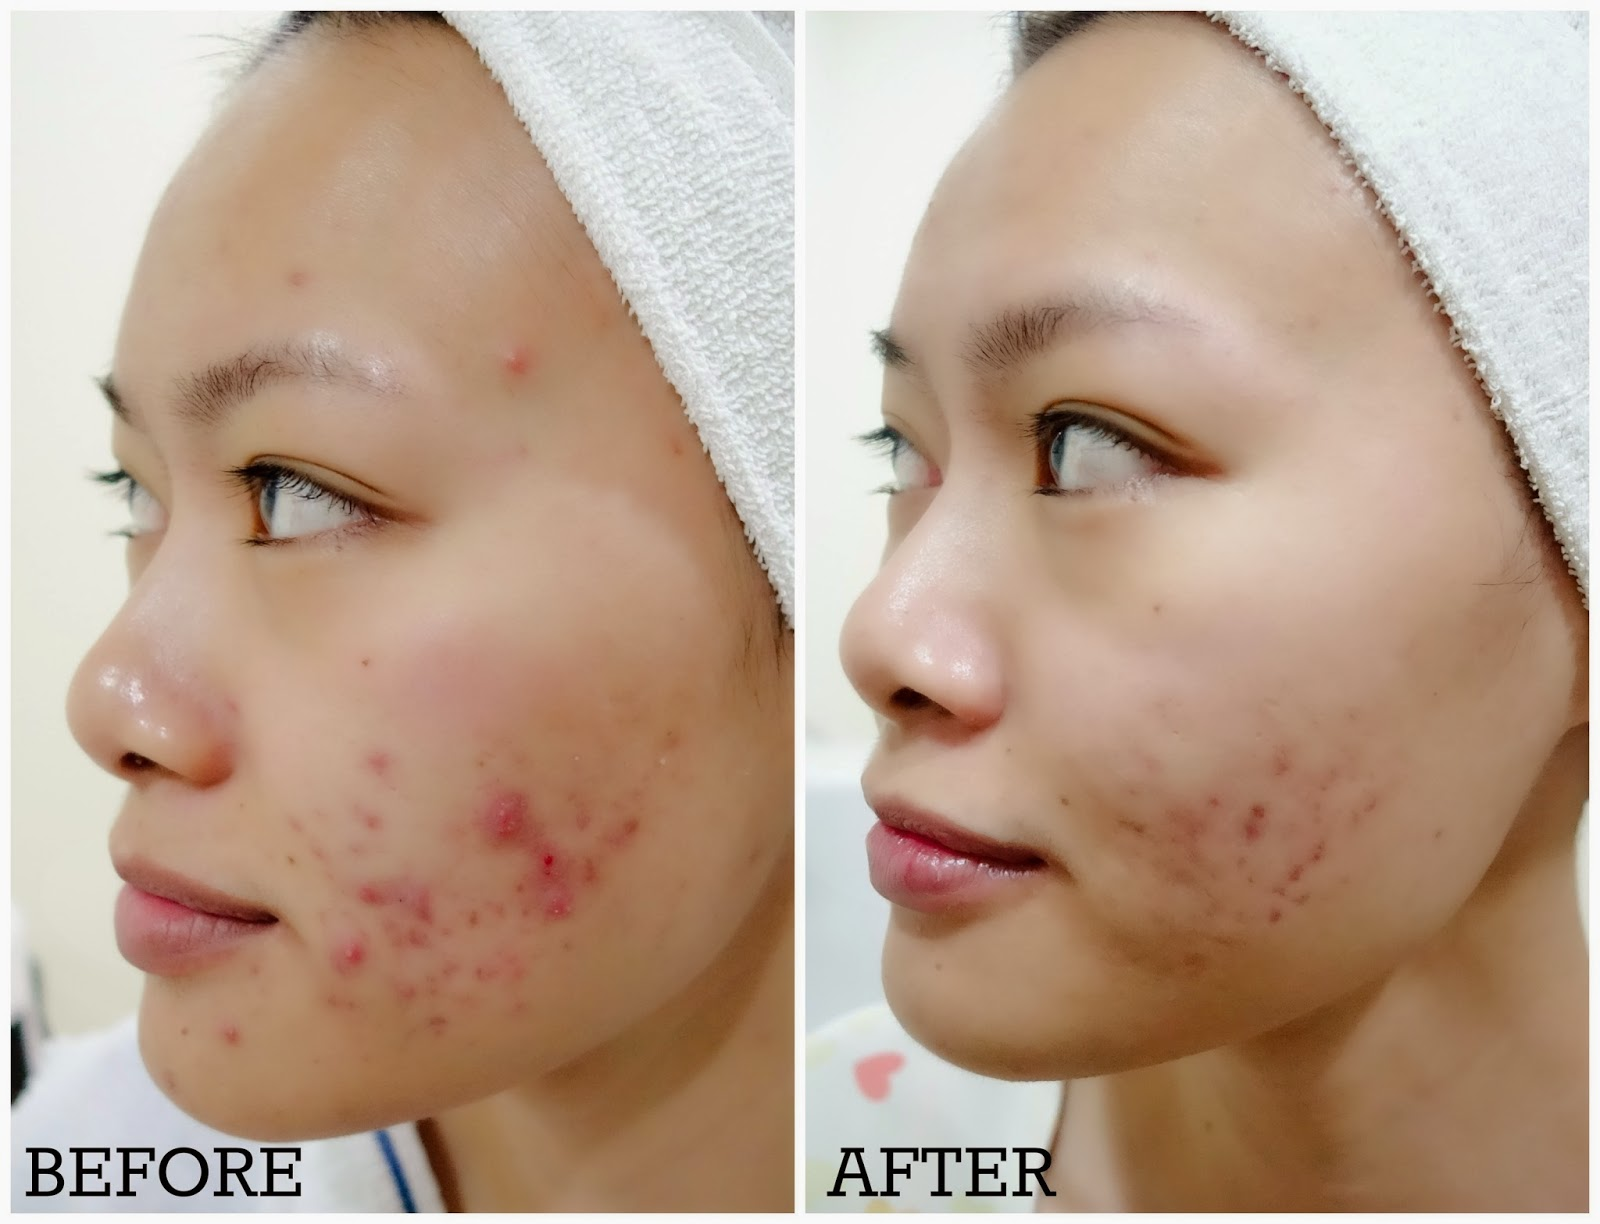 Cystic Acne also Show 1660 in addition Younique Touch Skin Perfecting Concealer as well Best Treatment For Acne Prone Skin further Red Face Difference Acne Rosacea. on new scars and sun